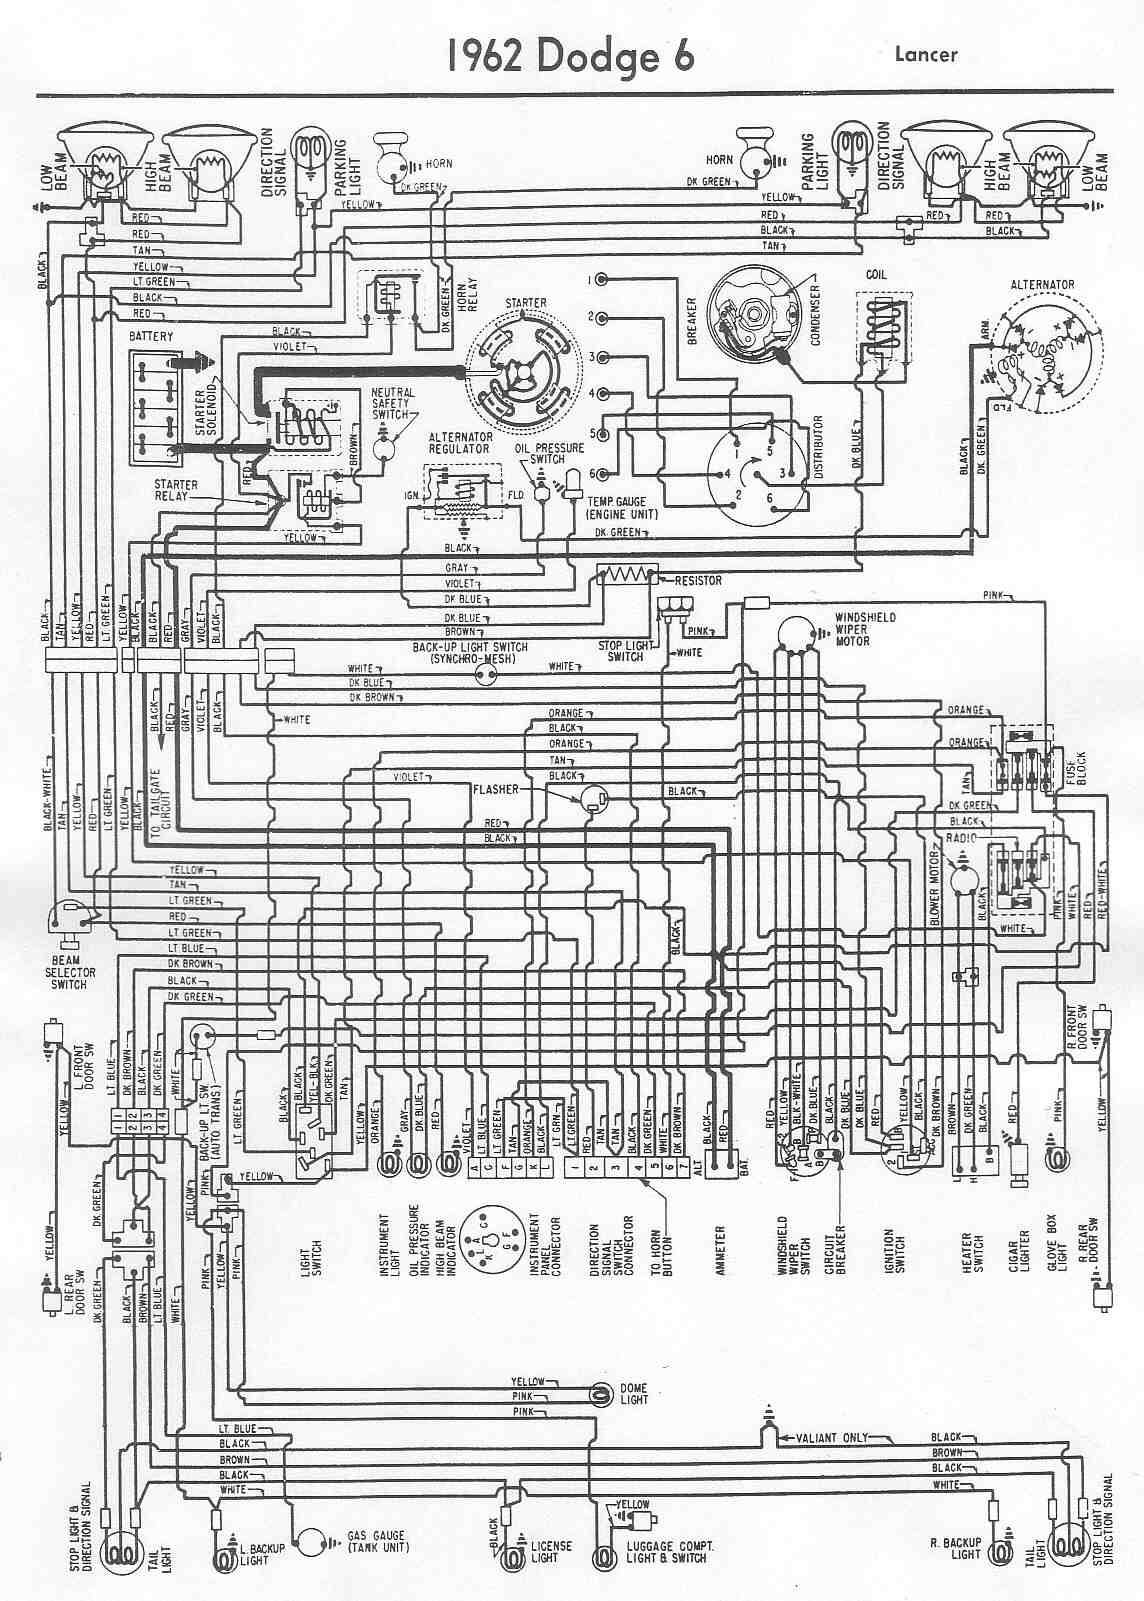 Ford Alternator Wiring Diagrams 1997 Electrical Diagram Schematics F100 Dodge Lancer Services U2022 1999